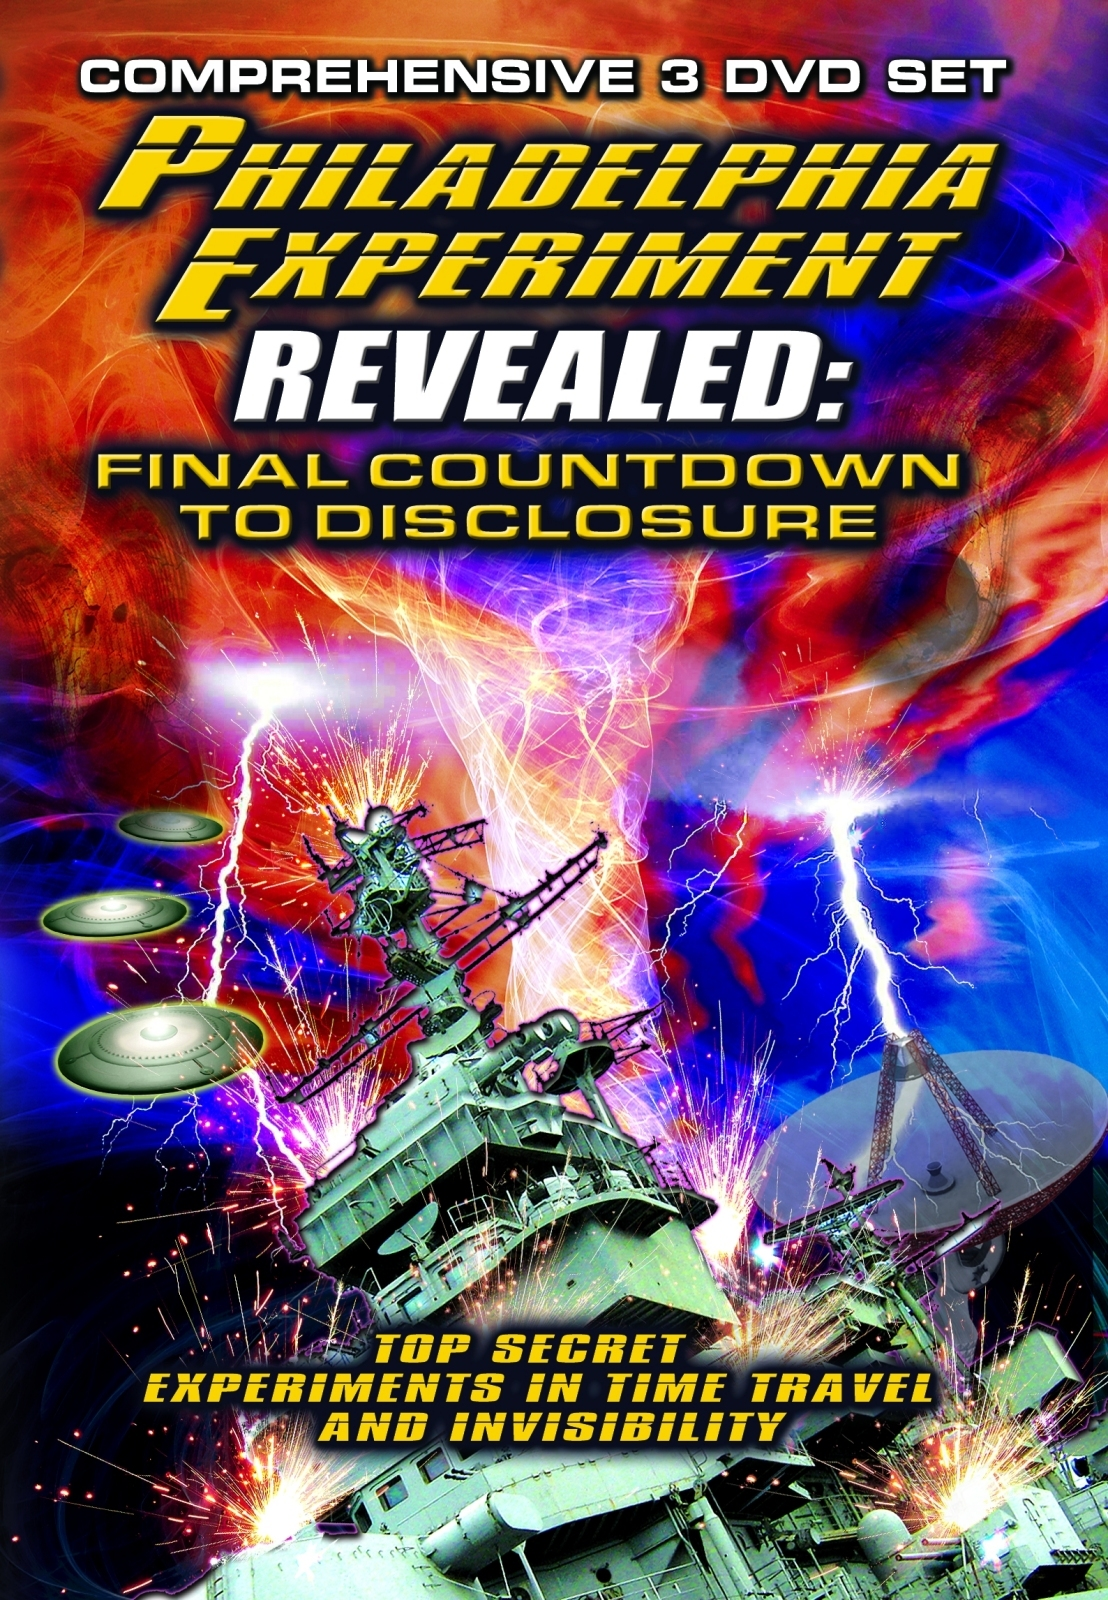 The Philadelphia Experiment Revealed: Final Countdown to Disclosure from the Area 51 Archives hd on soap2day